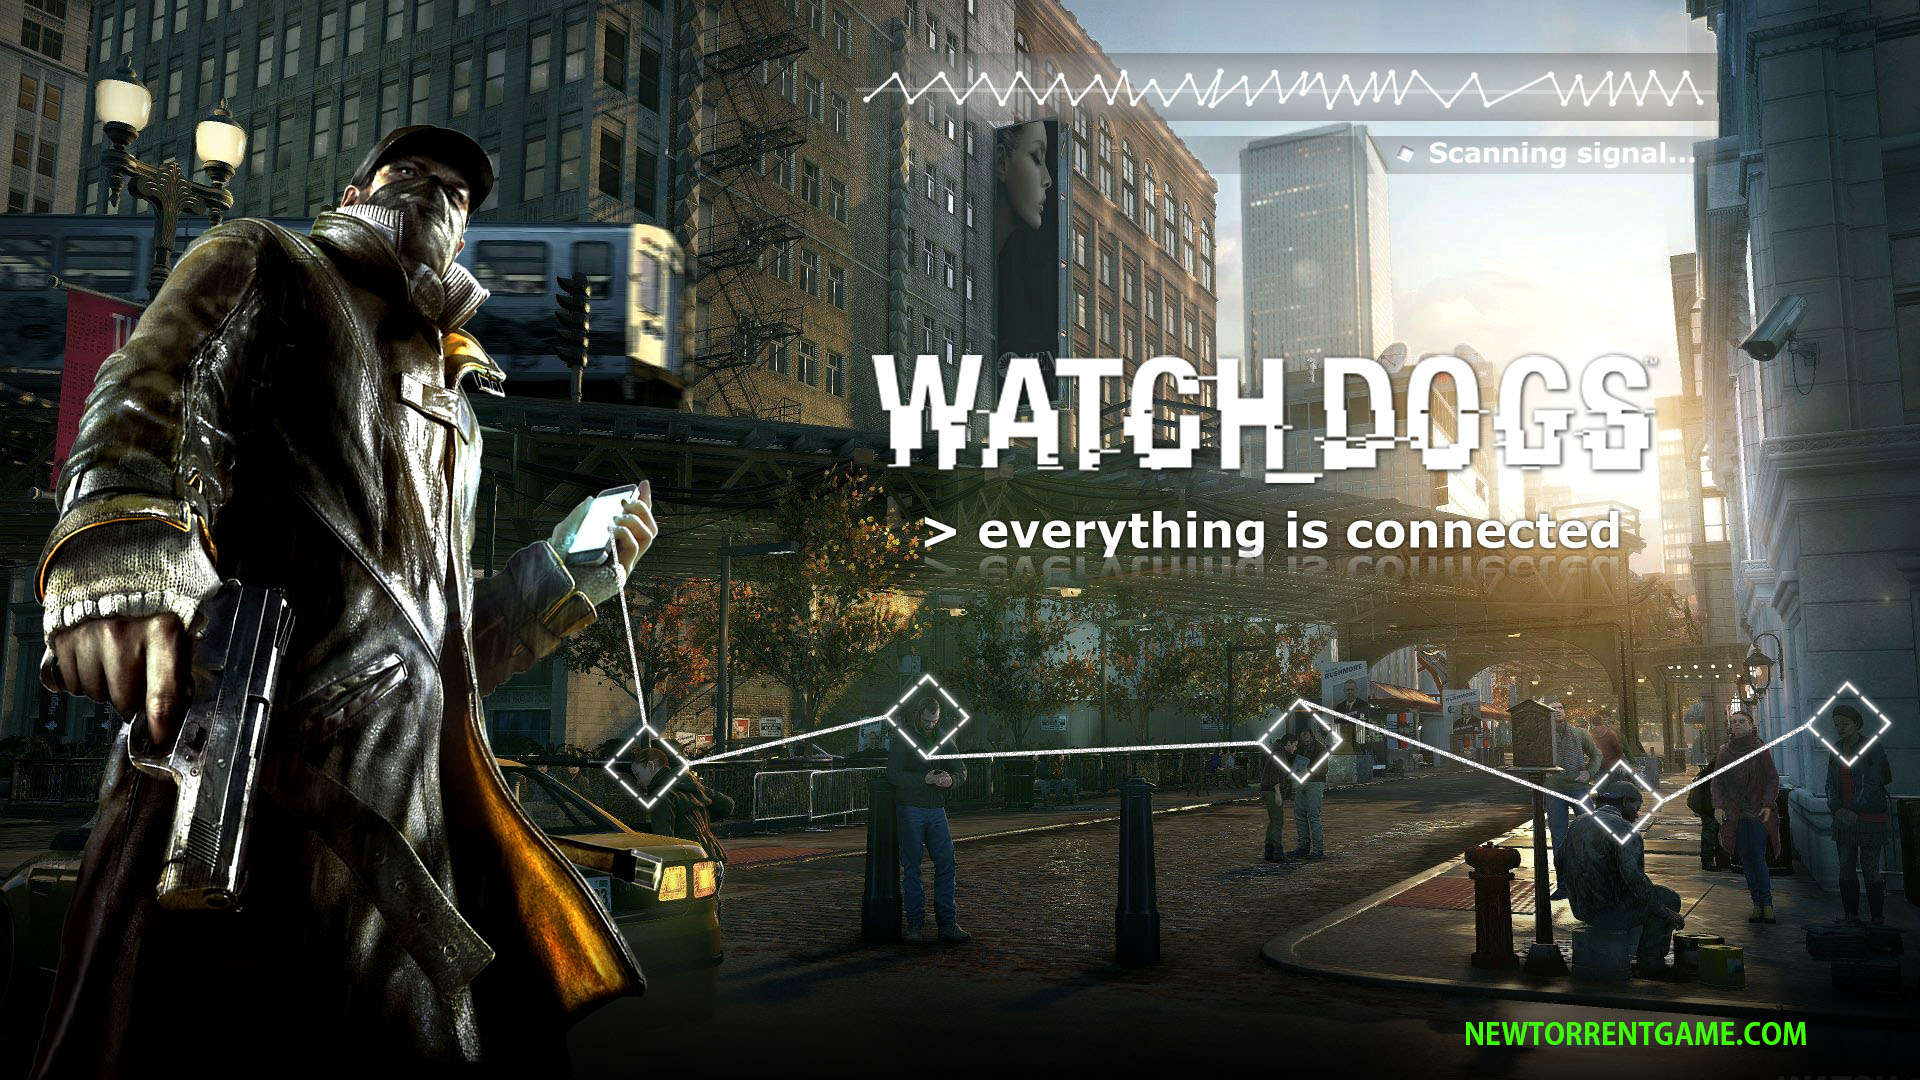 WATCH DOGS torrent download